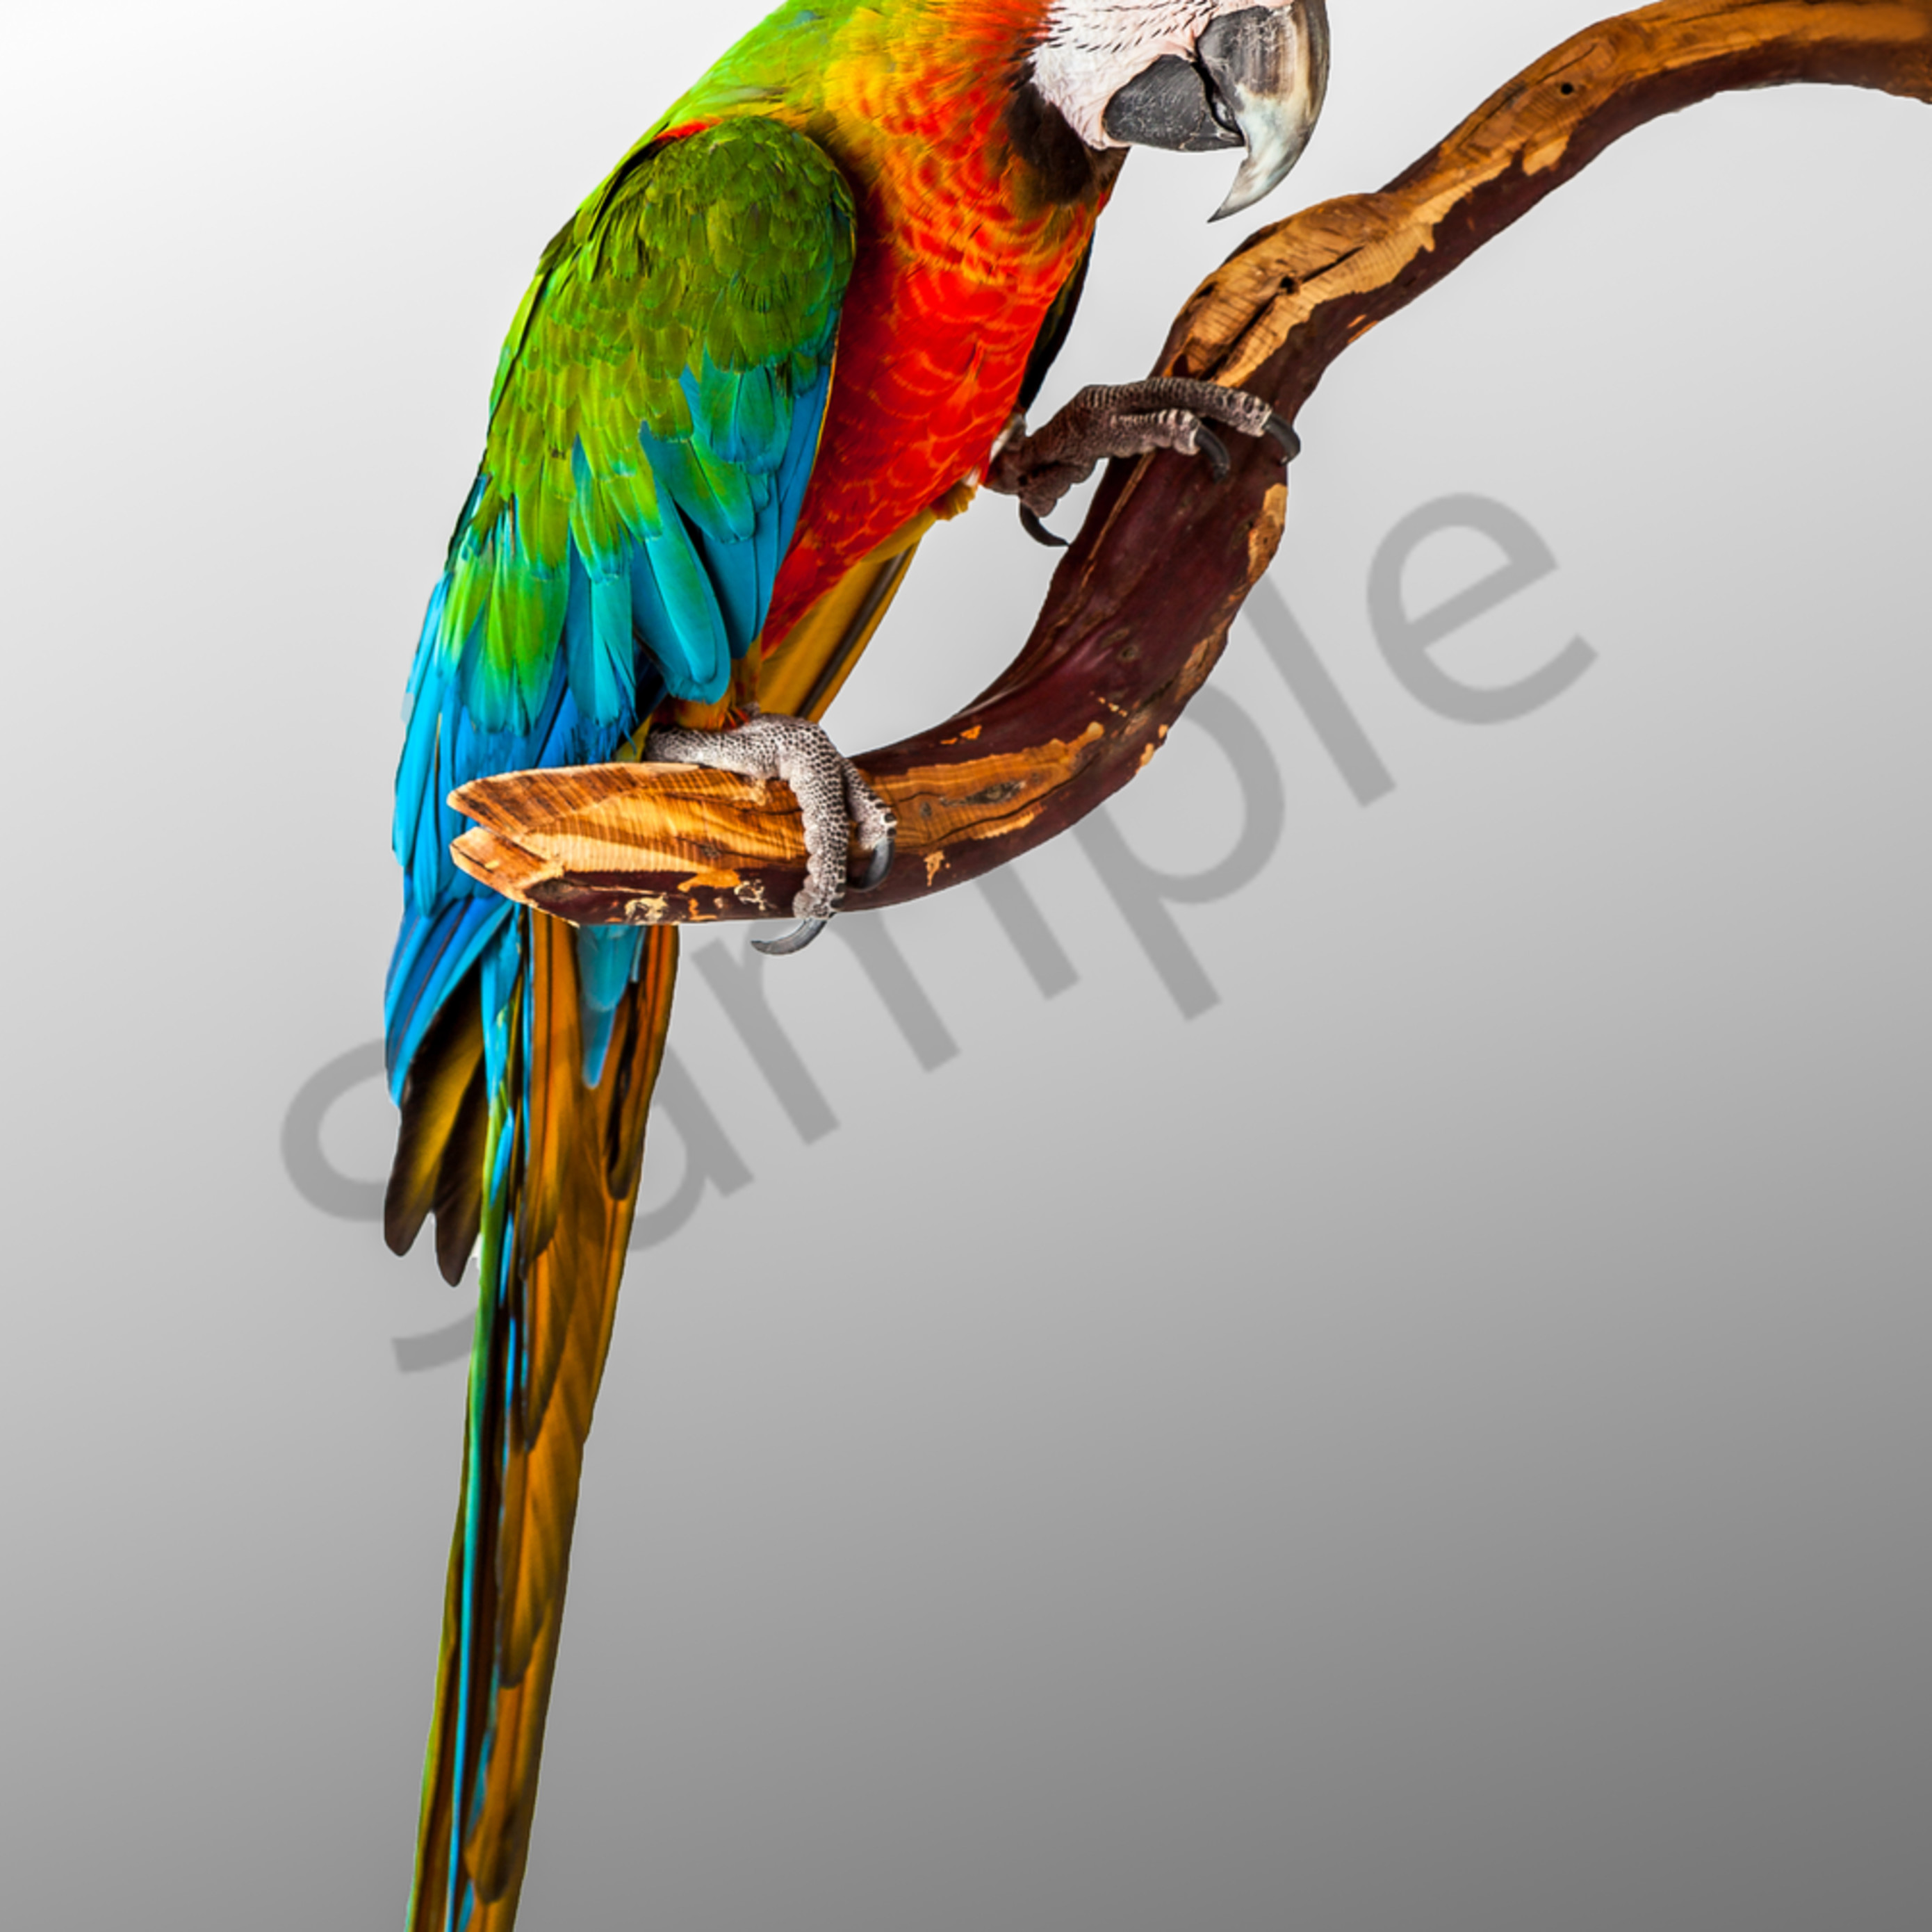 Asf parrots 0007  ugddmo